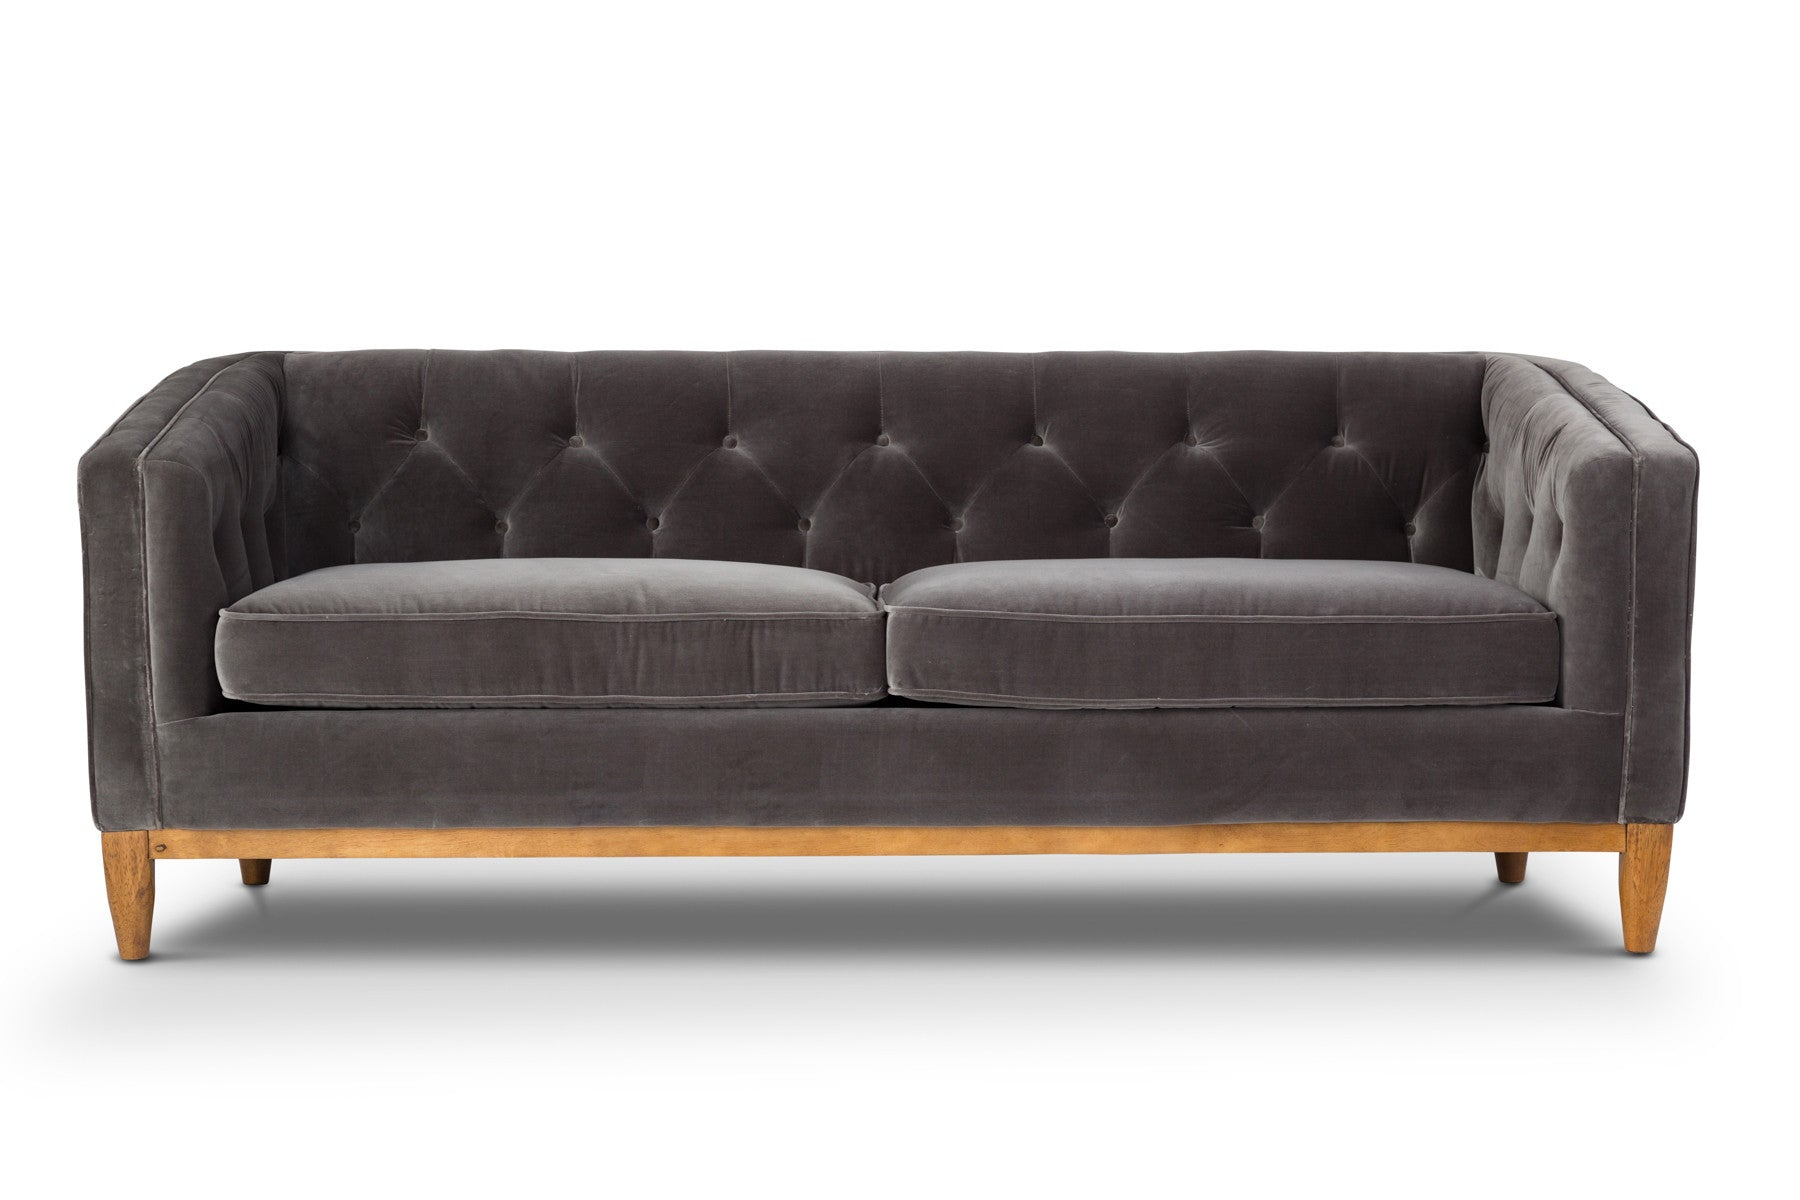 Classic and Contemporary Velvet Sofa